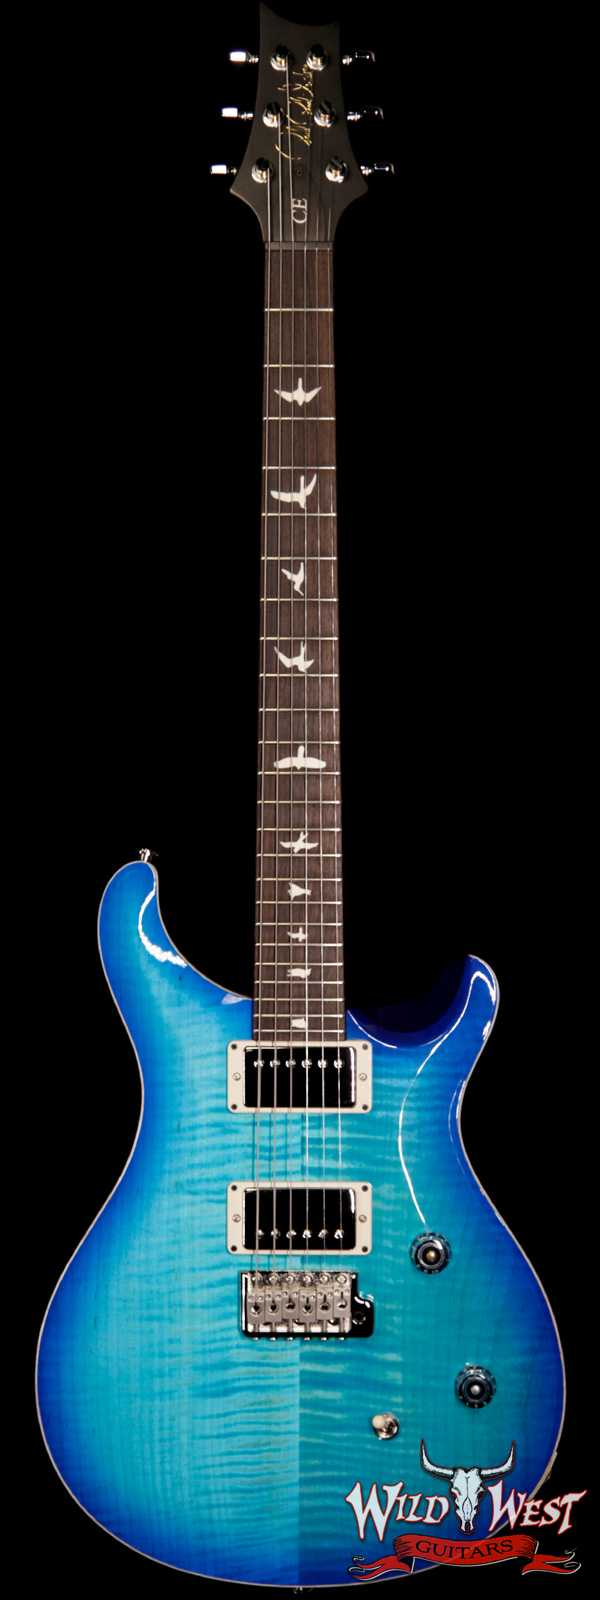 PRS Wild West Guitars Special Run CE 24 Flame Top Painted Neck 57/08 Pickups Makena Blue 290165